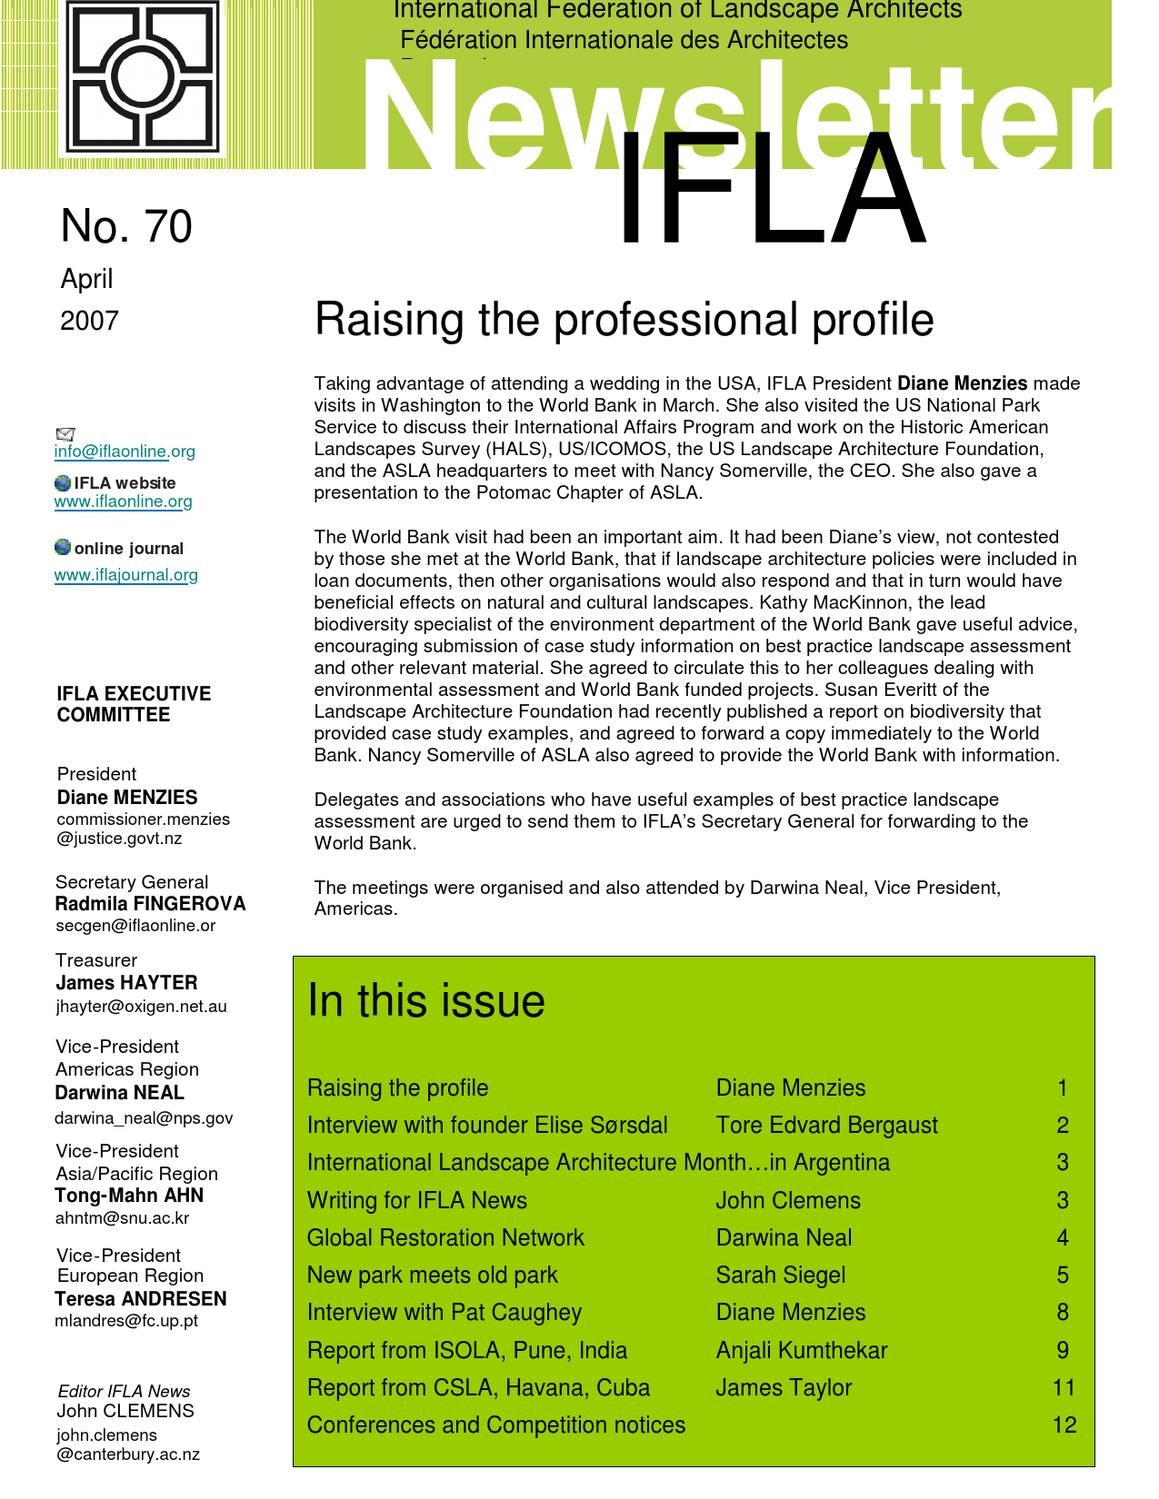 Raising the professional profile by international for International federation of landscape architects